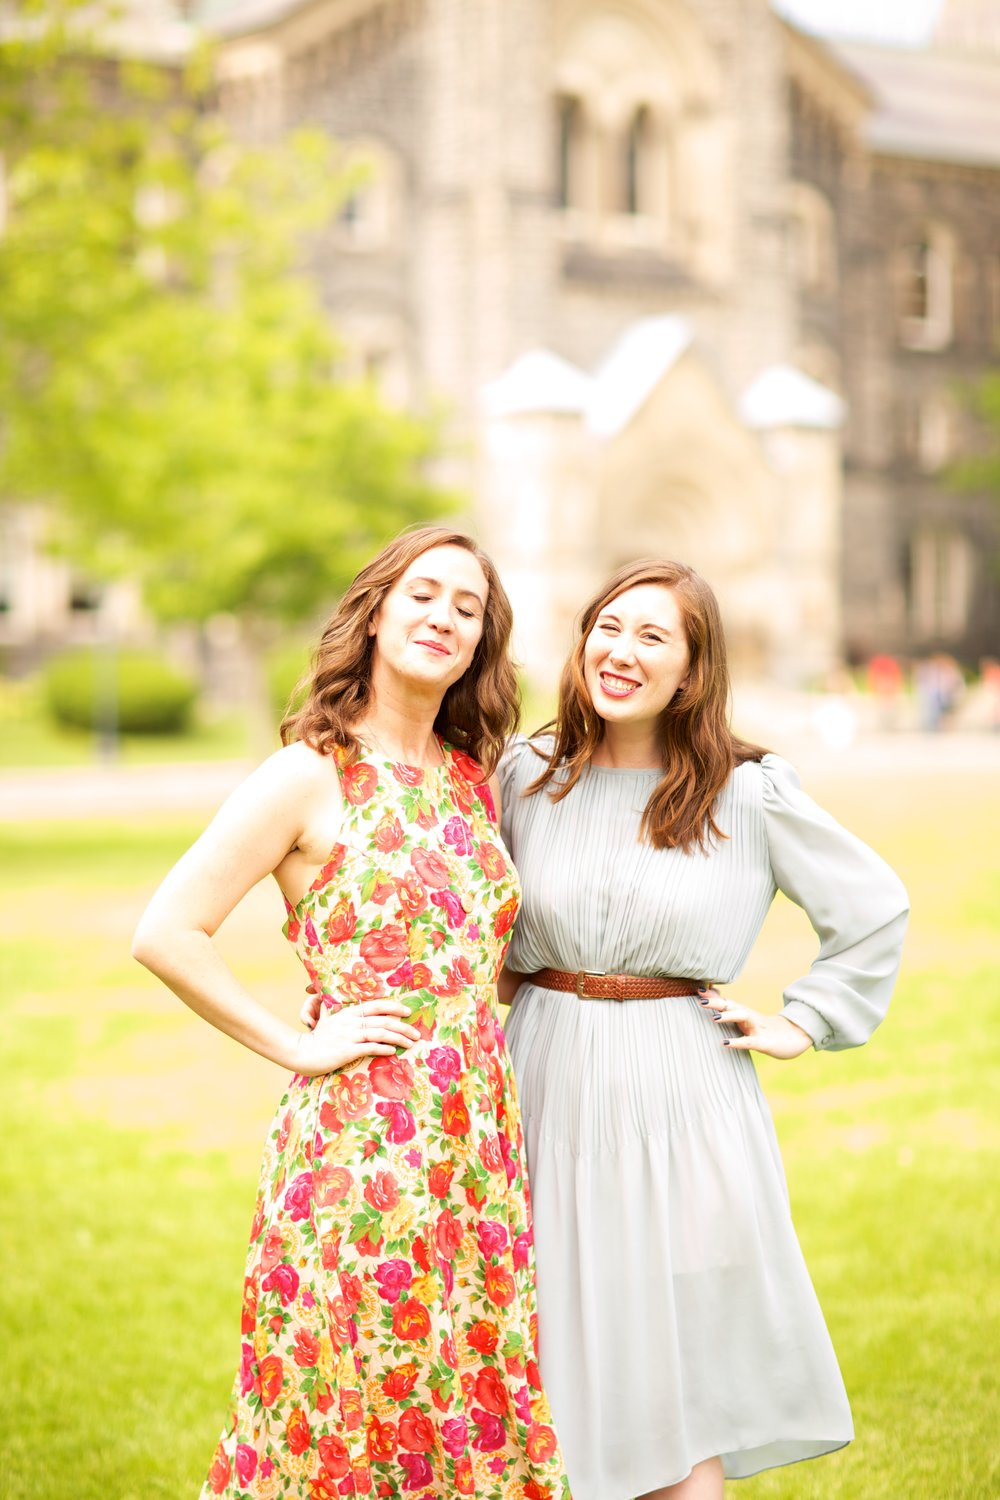 here's a pic of my sister + I being awesome at my masters graduation